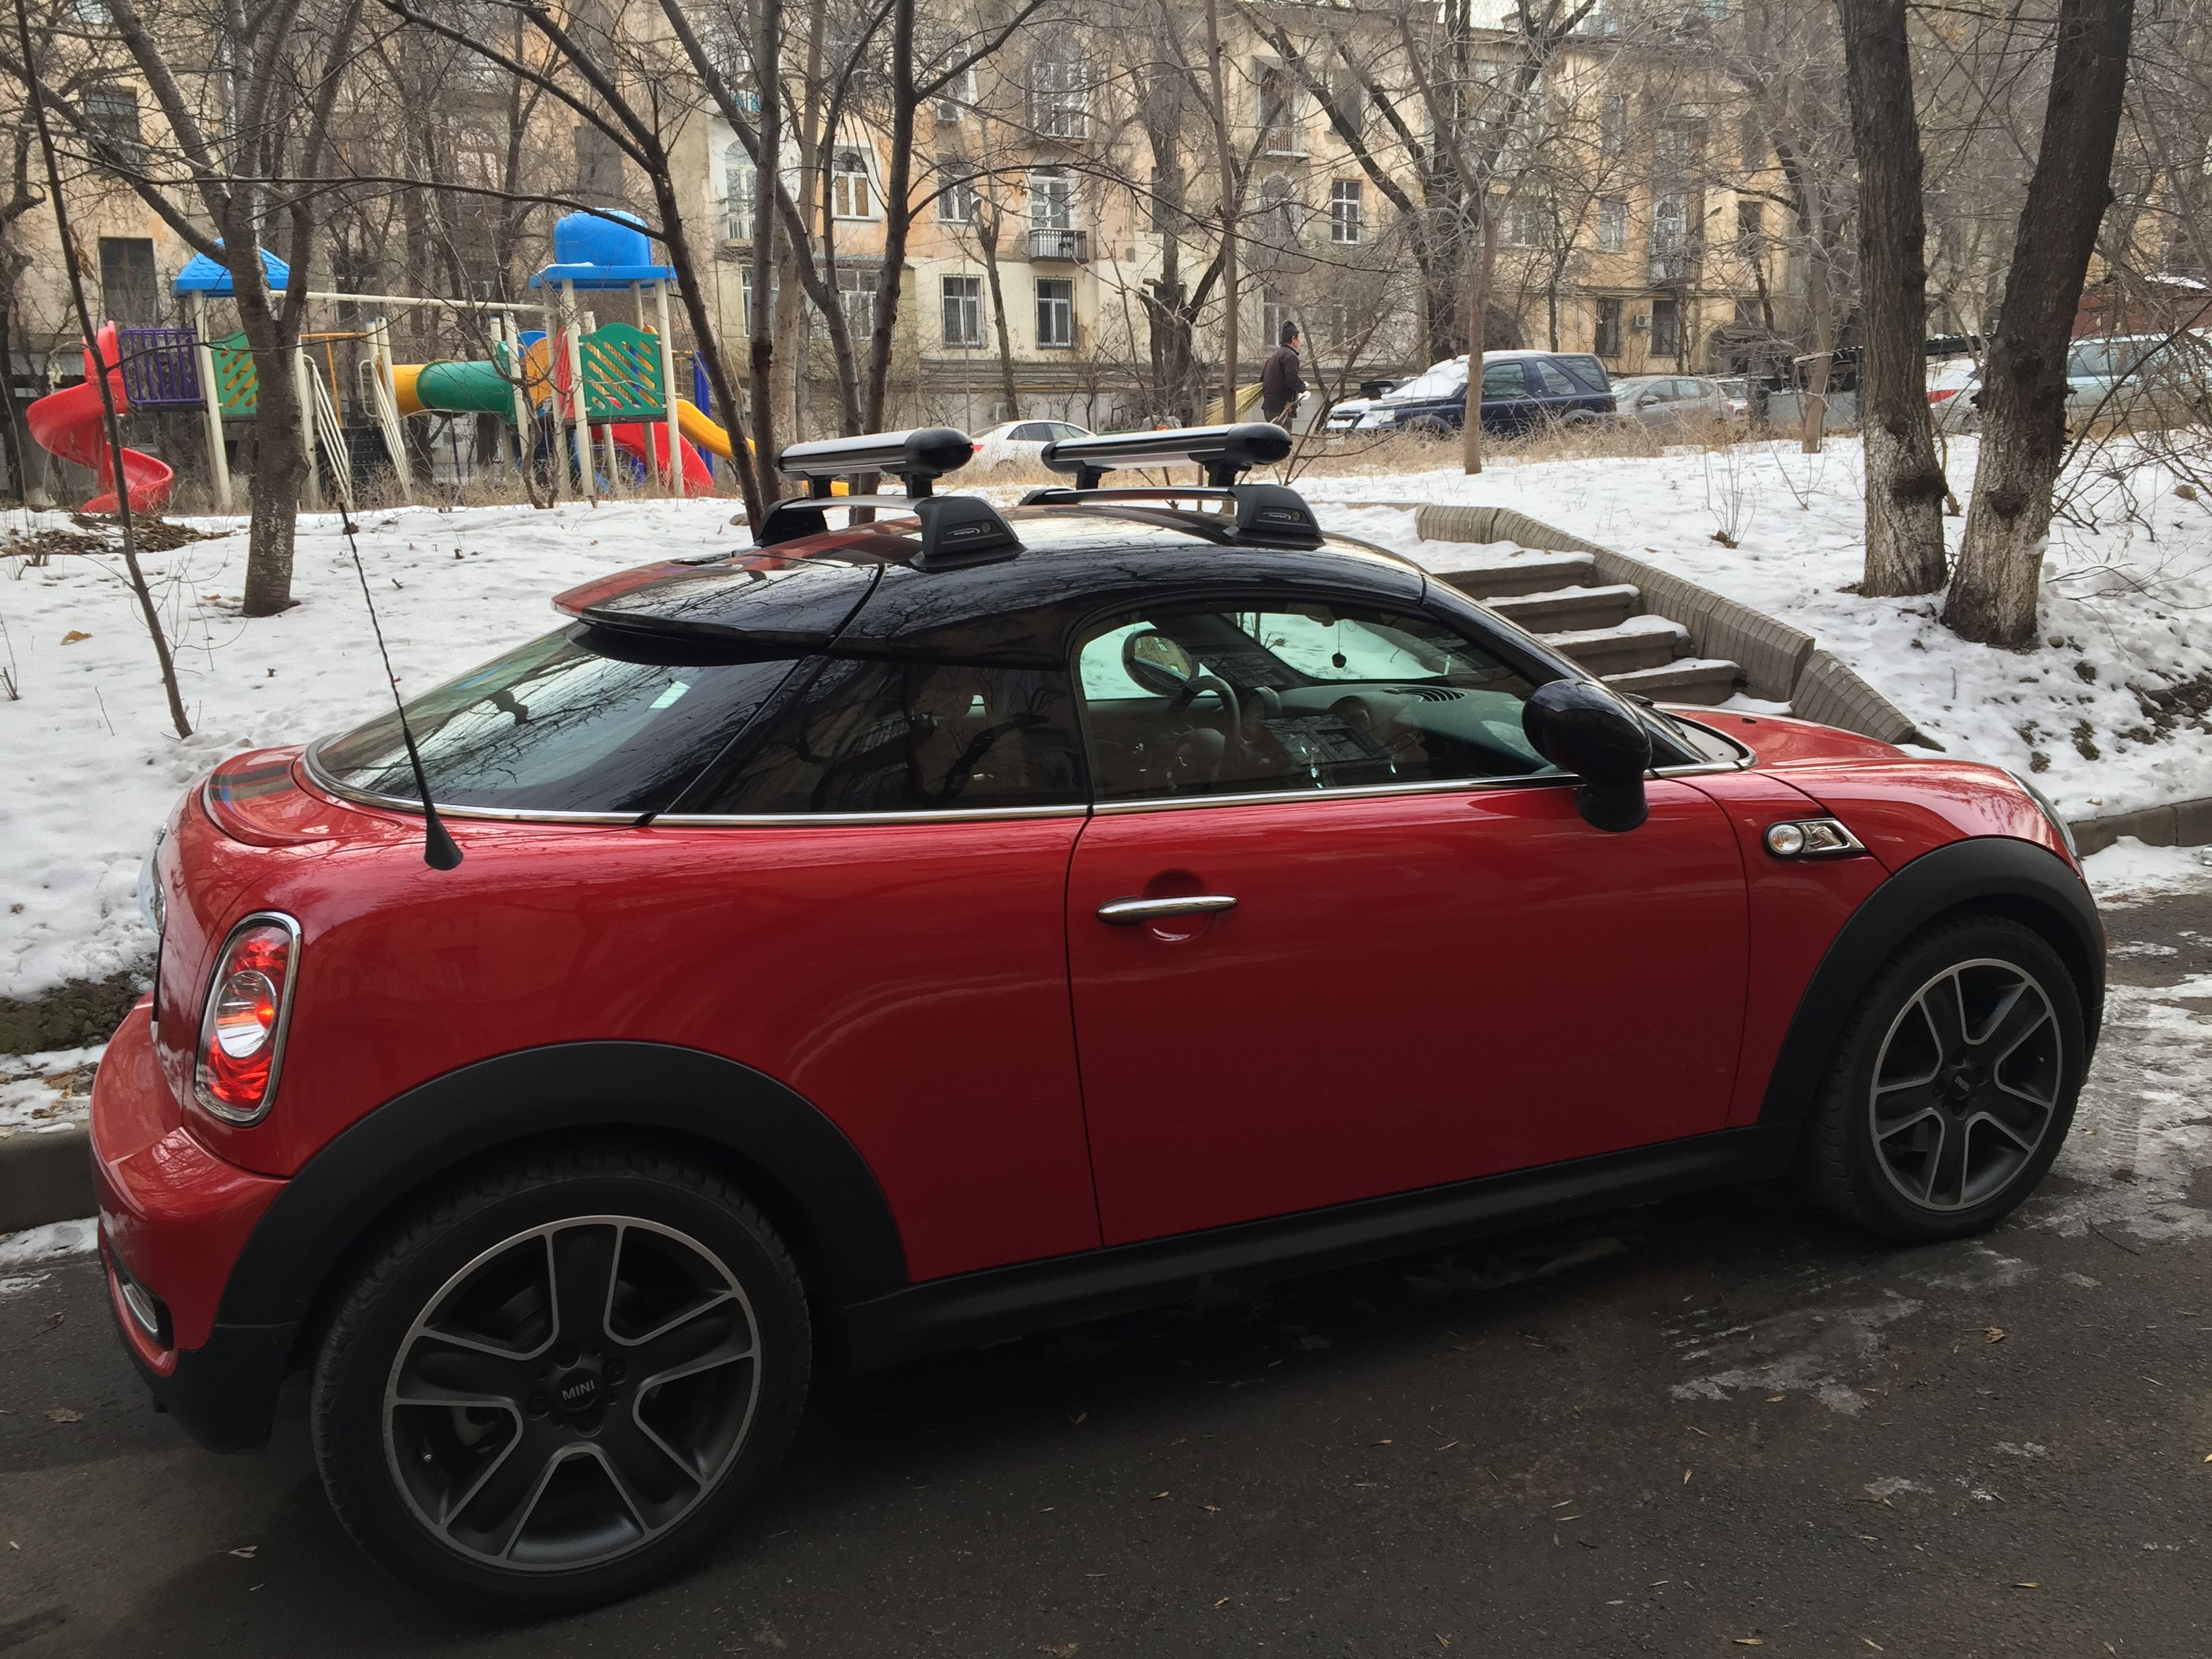 mini cooper s coupe roof rack snowboard mini coupe cooper roof rack snowboard s cargo. Black Bedroom Furniture Sets. Home Design Ideas